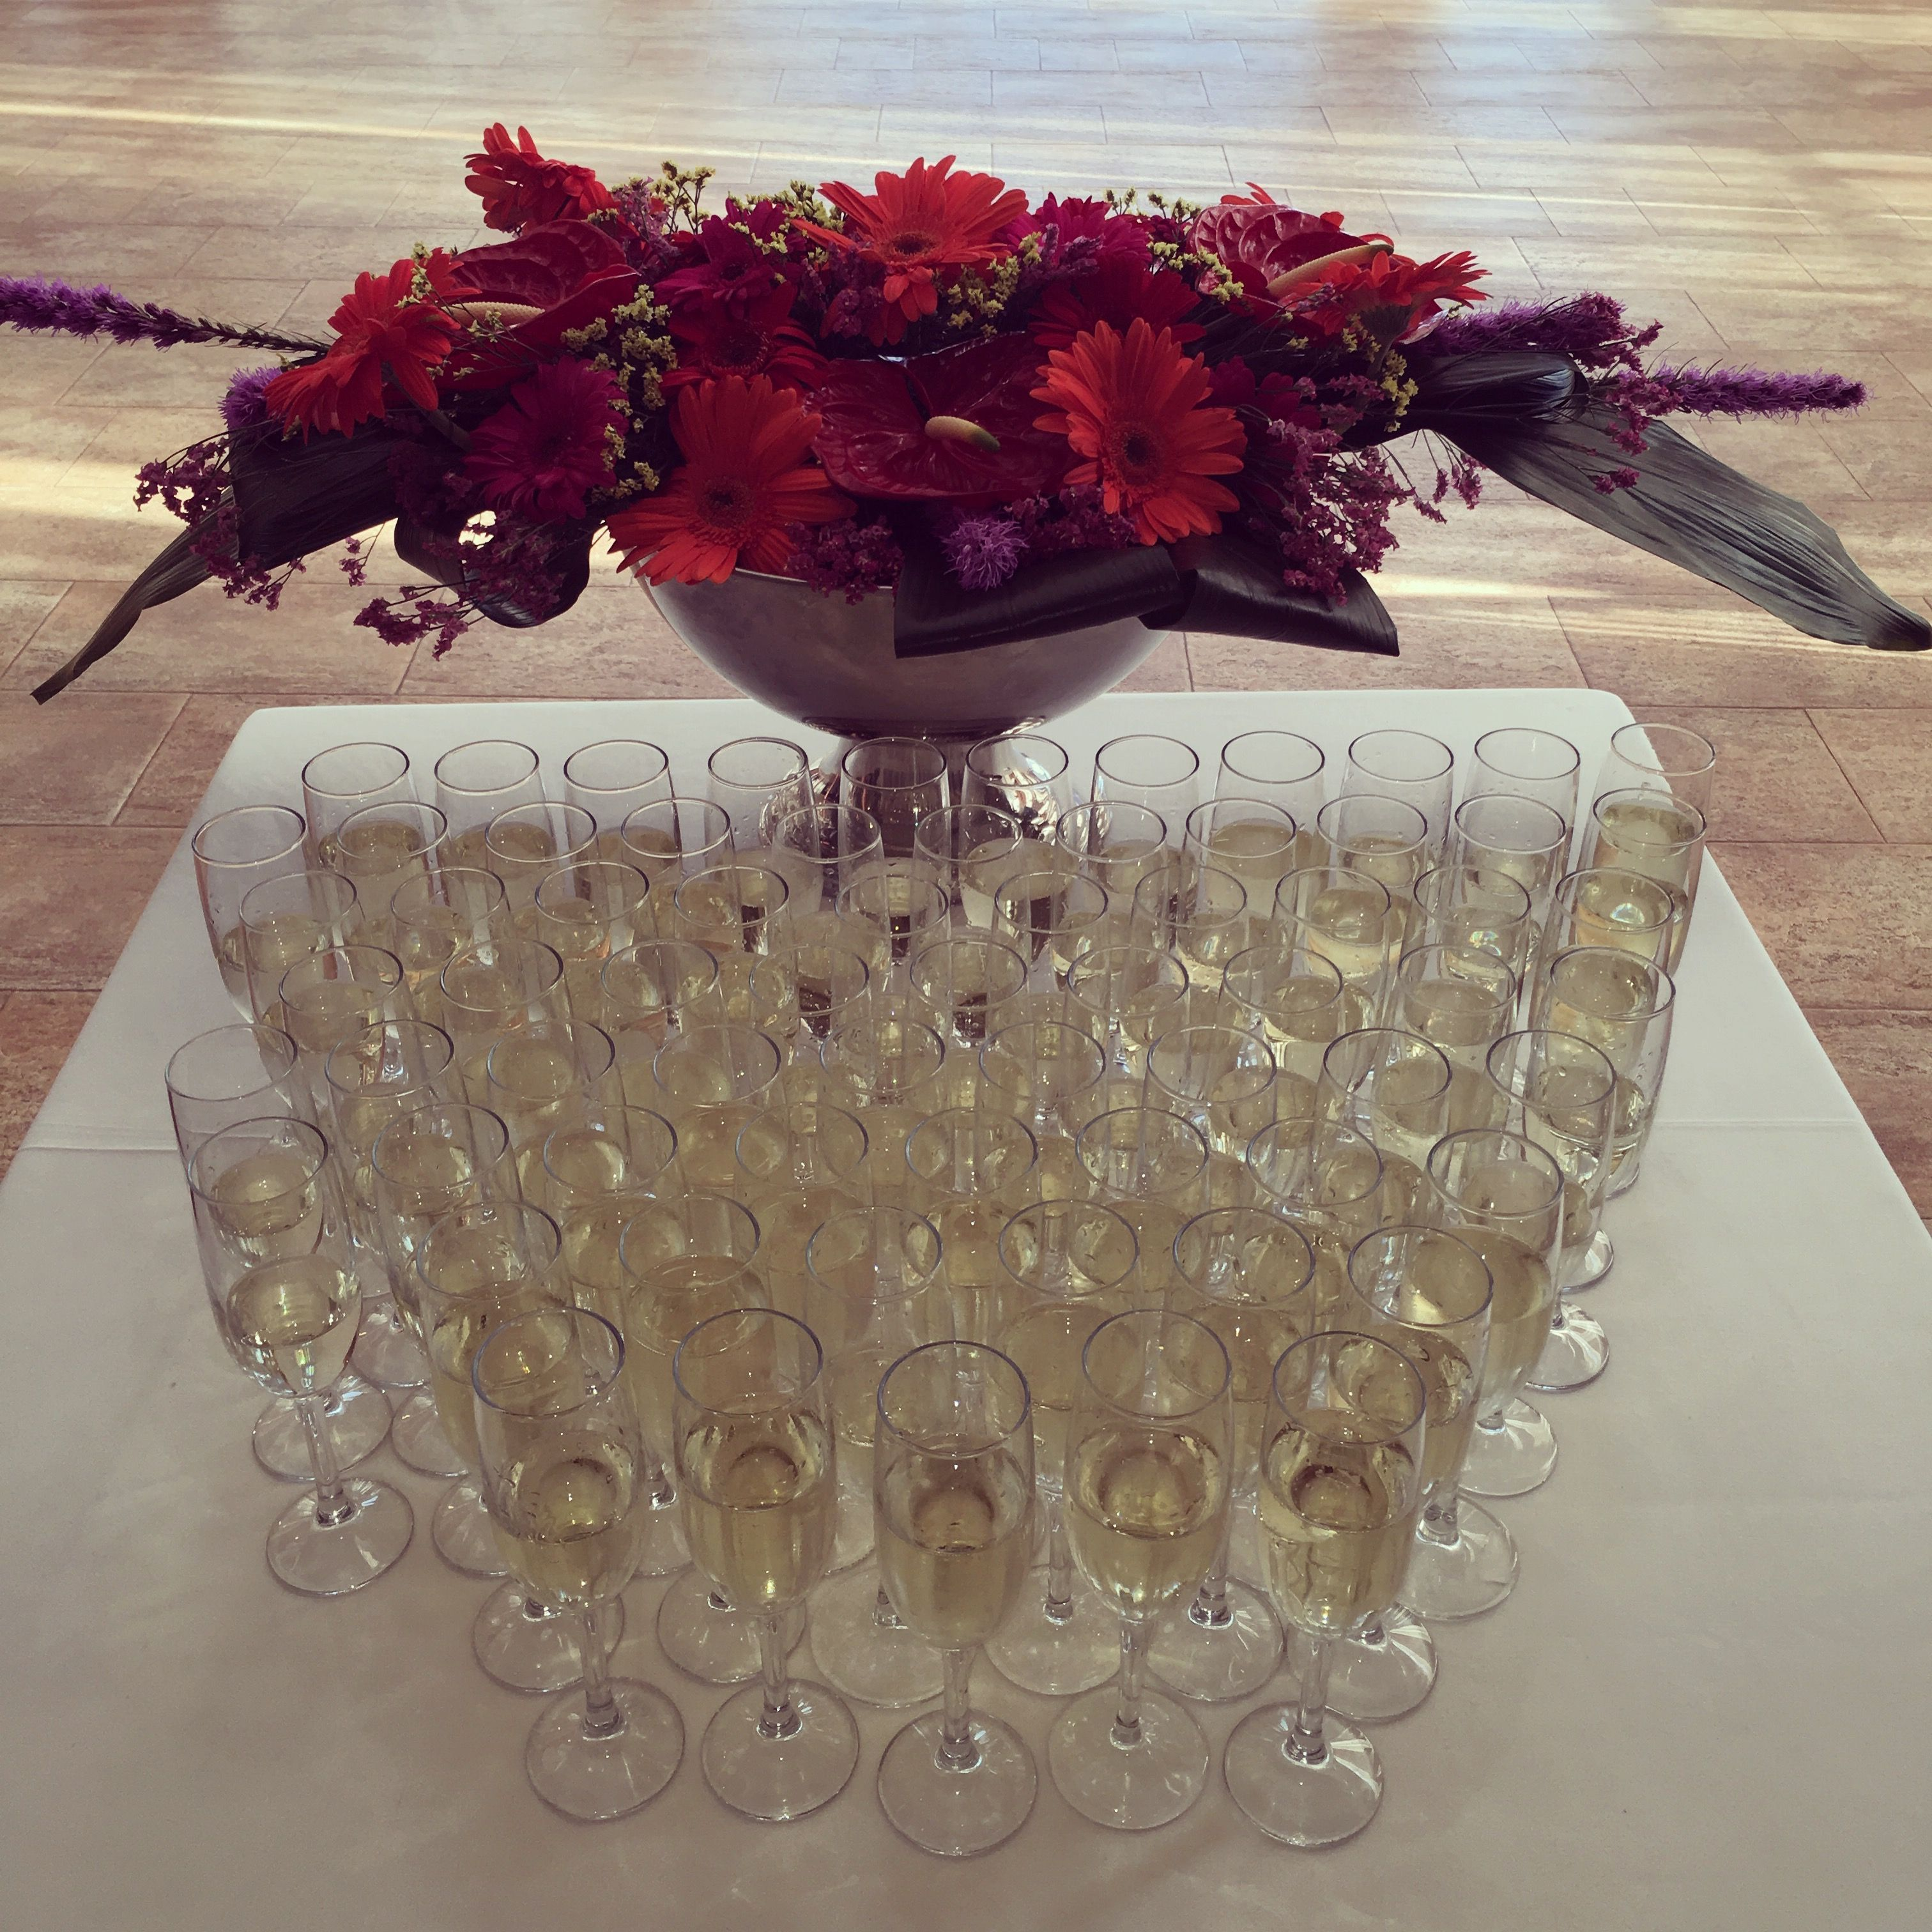 Spanish Wedding Planner Best Way To Welcome Guests At A